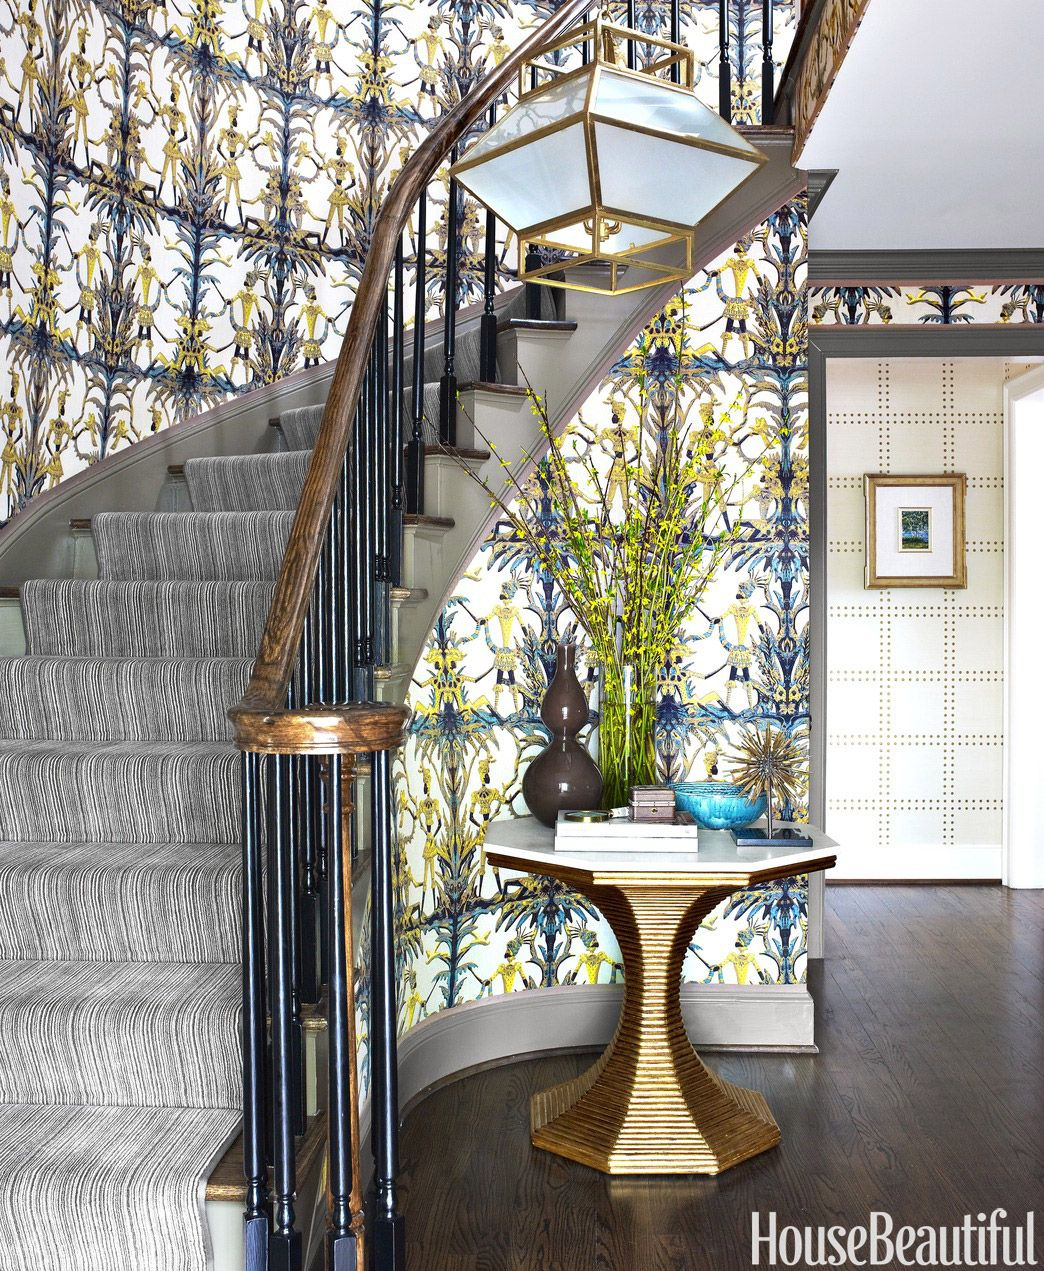 Nice 75+ Foyer Decorating Ideas   Design Pictures Of Foyers   House Beautiful